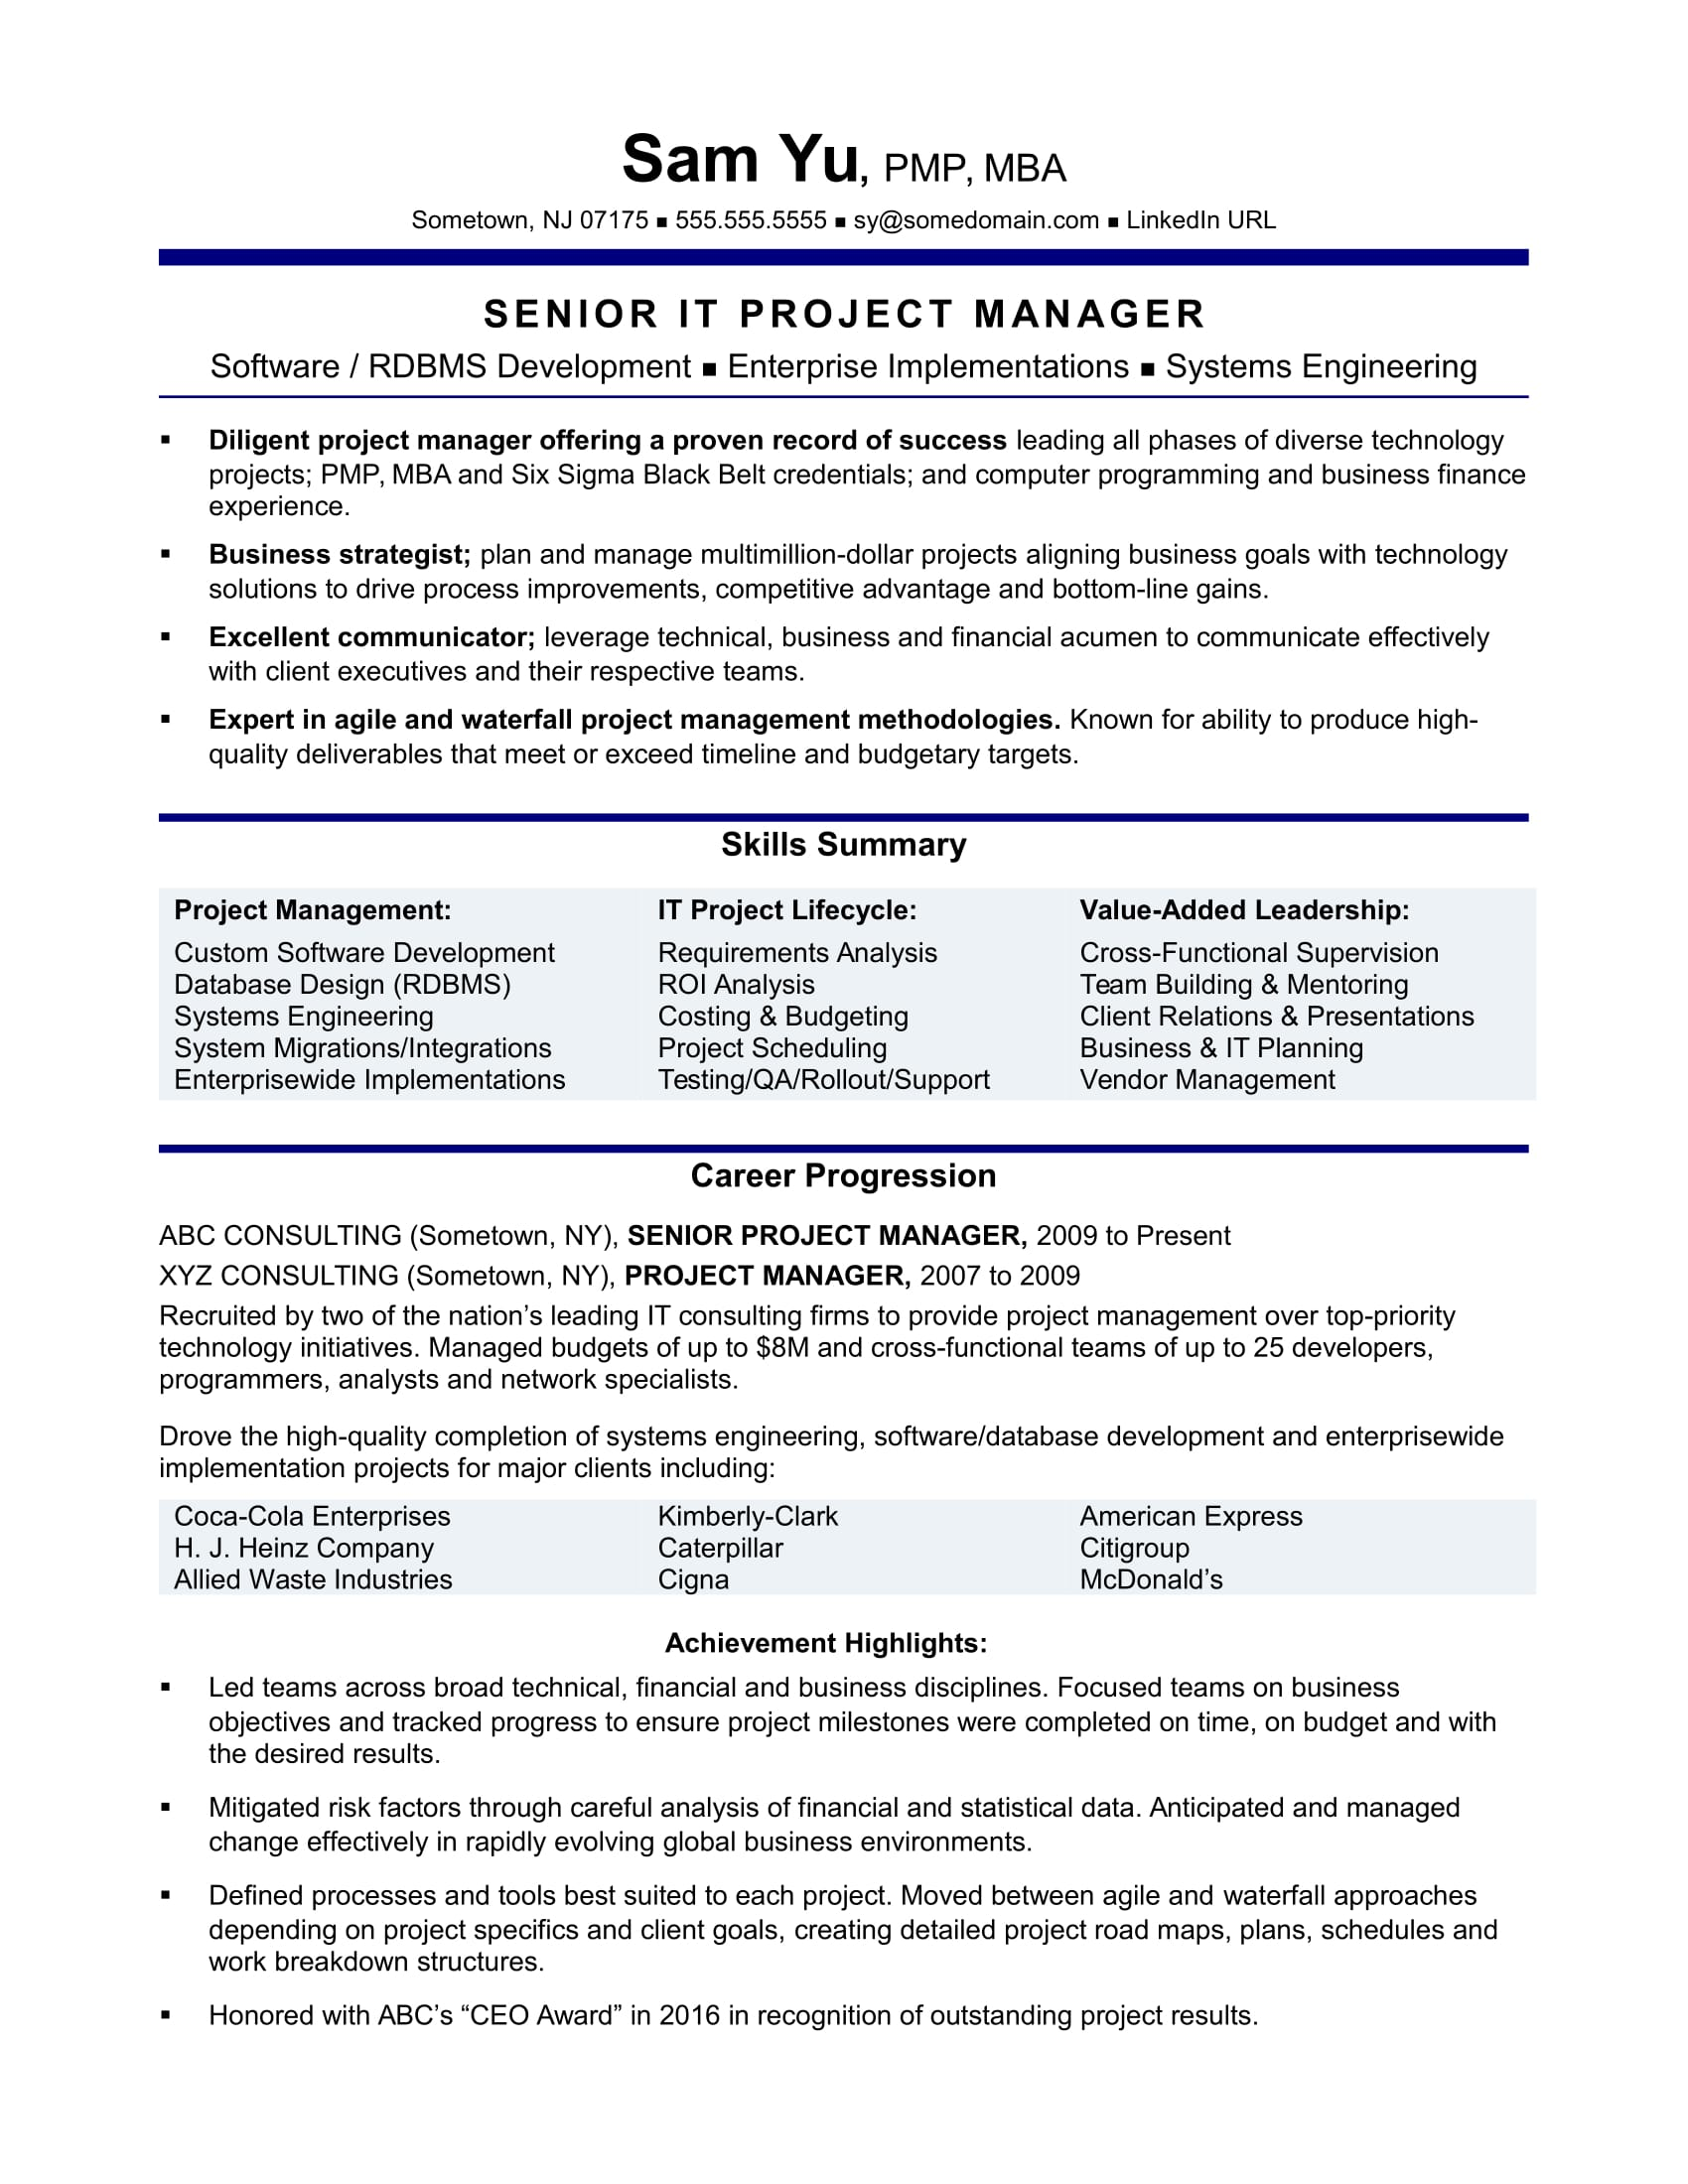 resume of it project manager - Boat.jeremyeaton.co